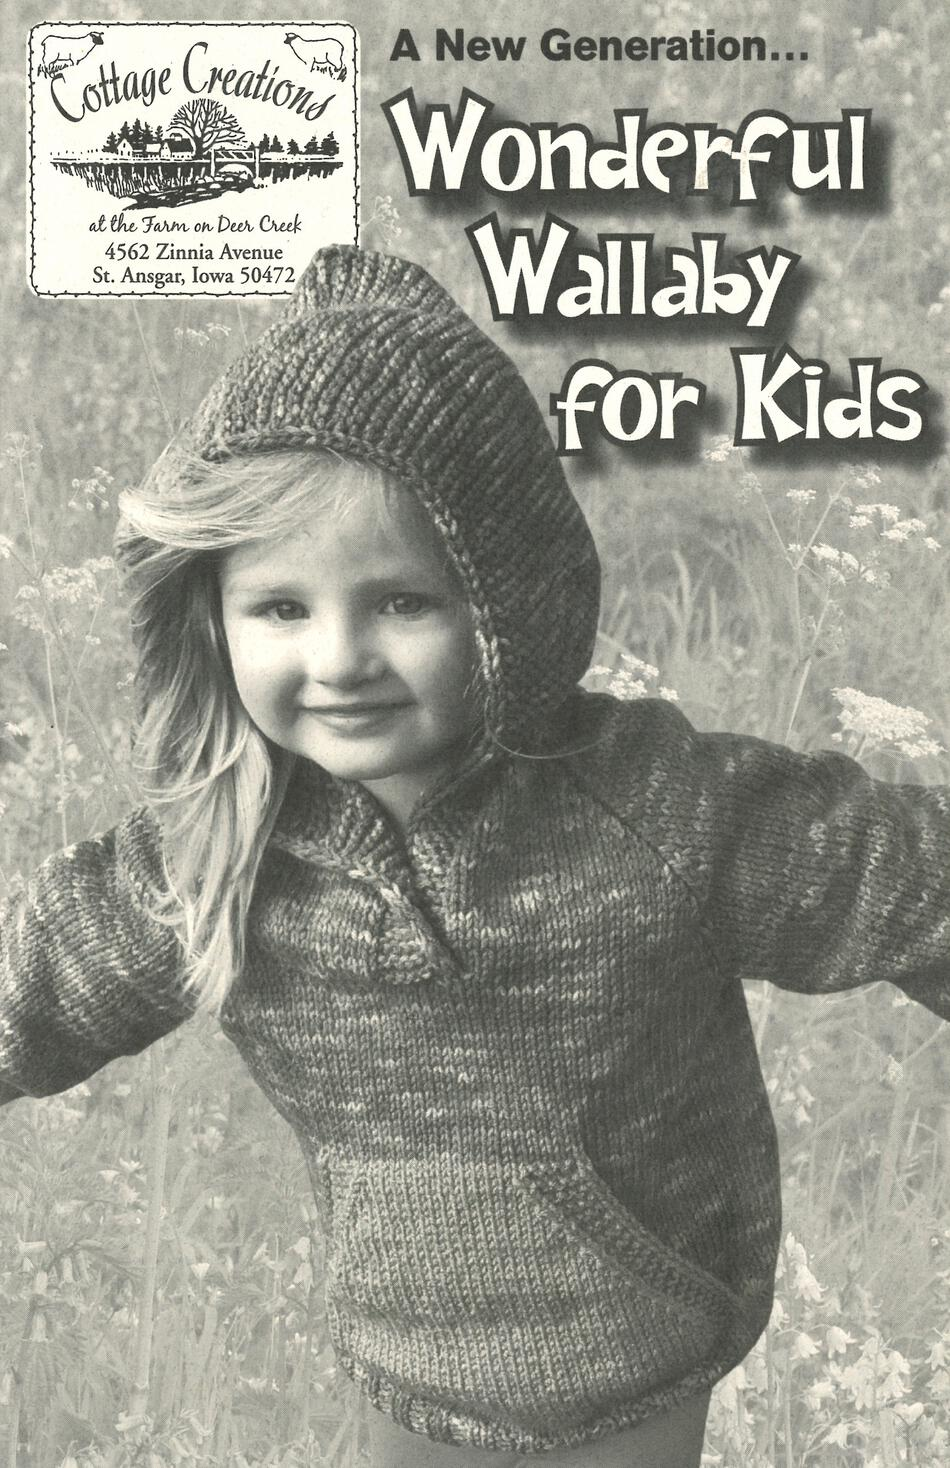 Knitting Books A New Generation Wonderful Wallaby for Kids